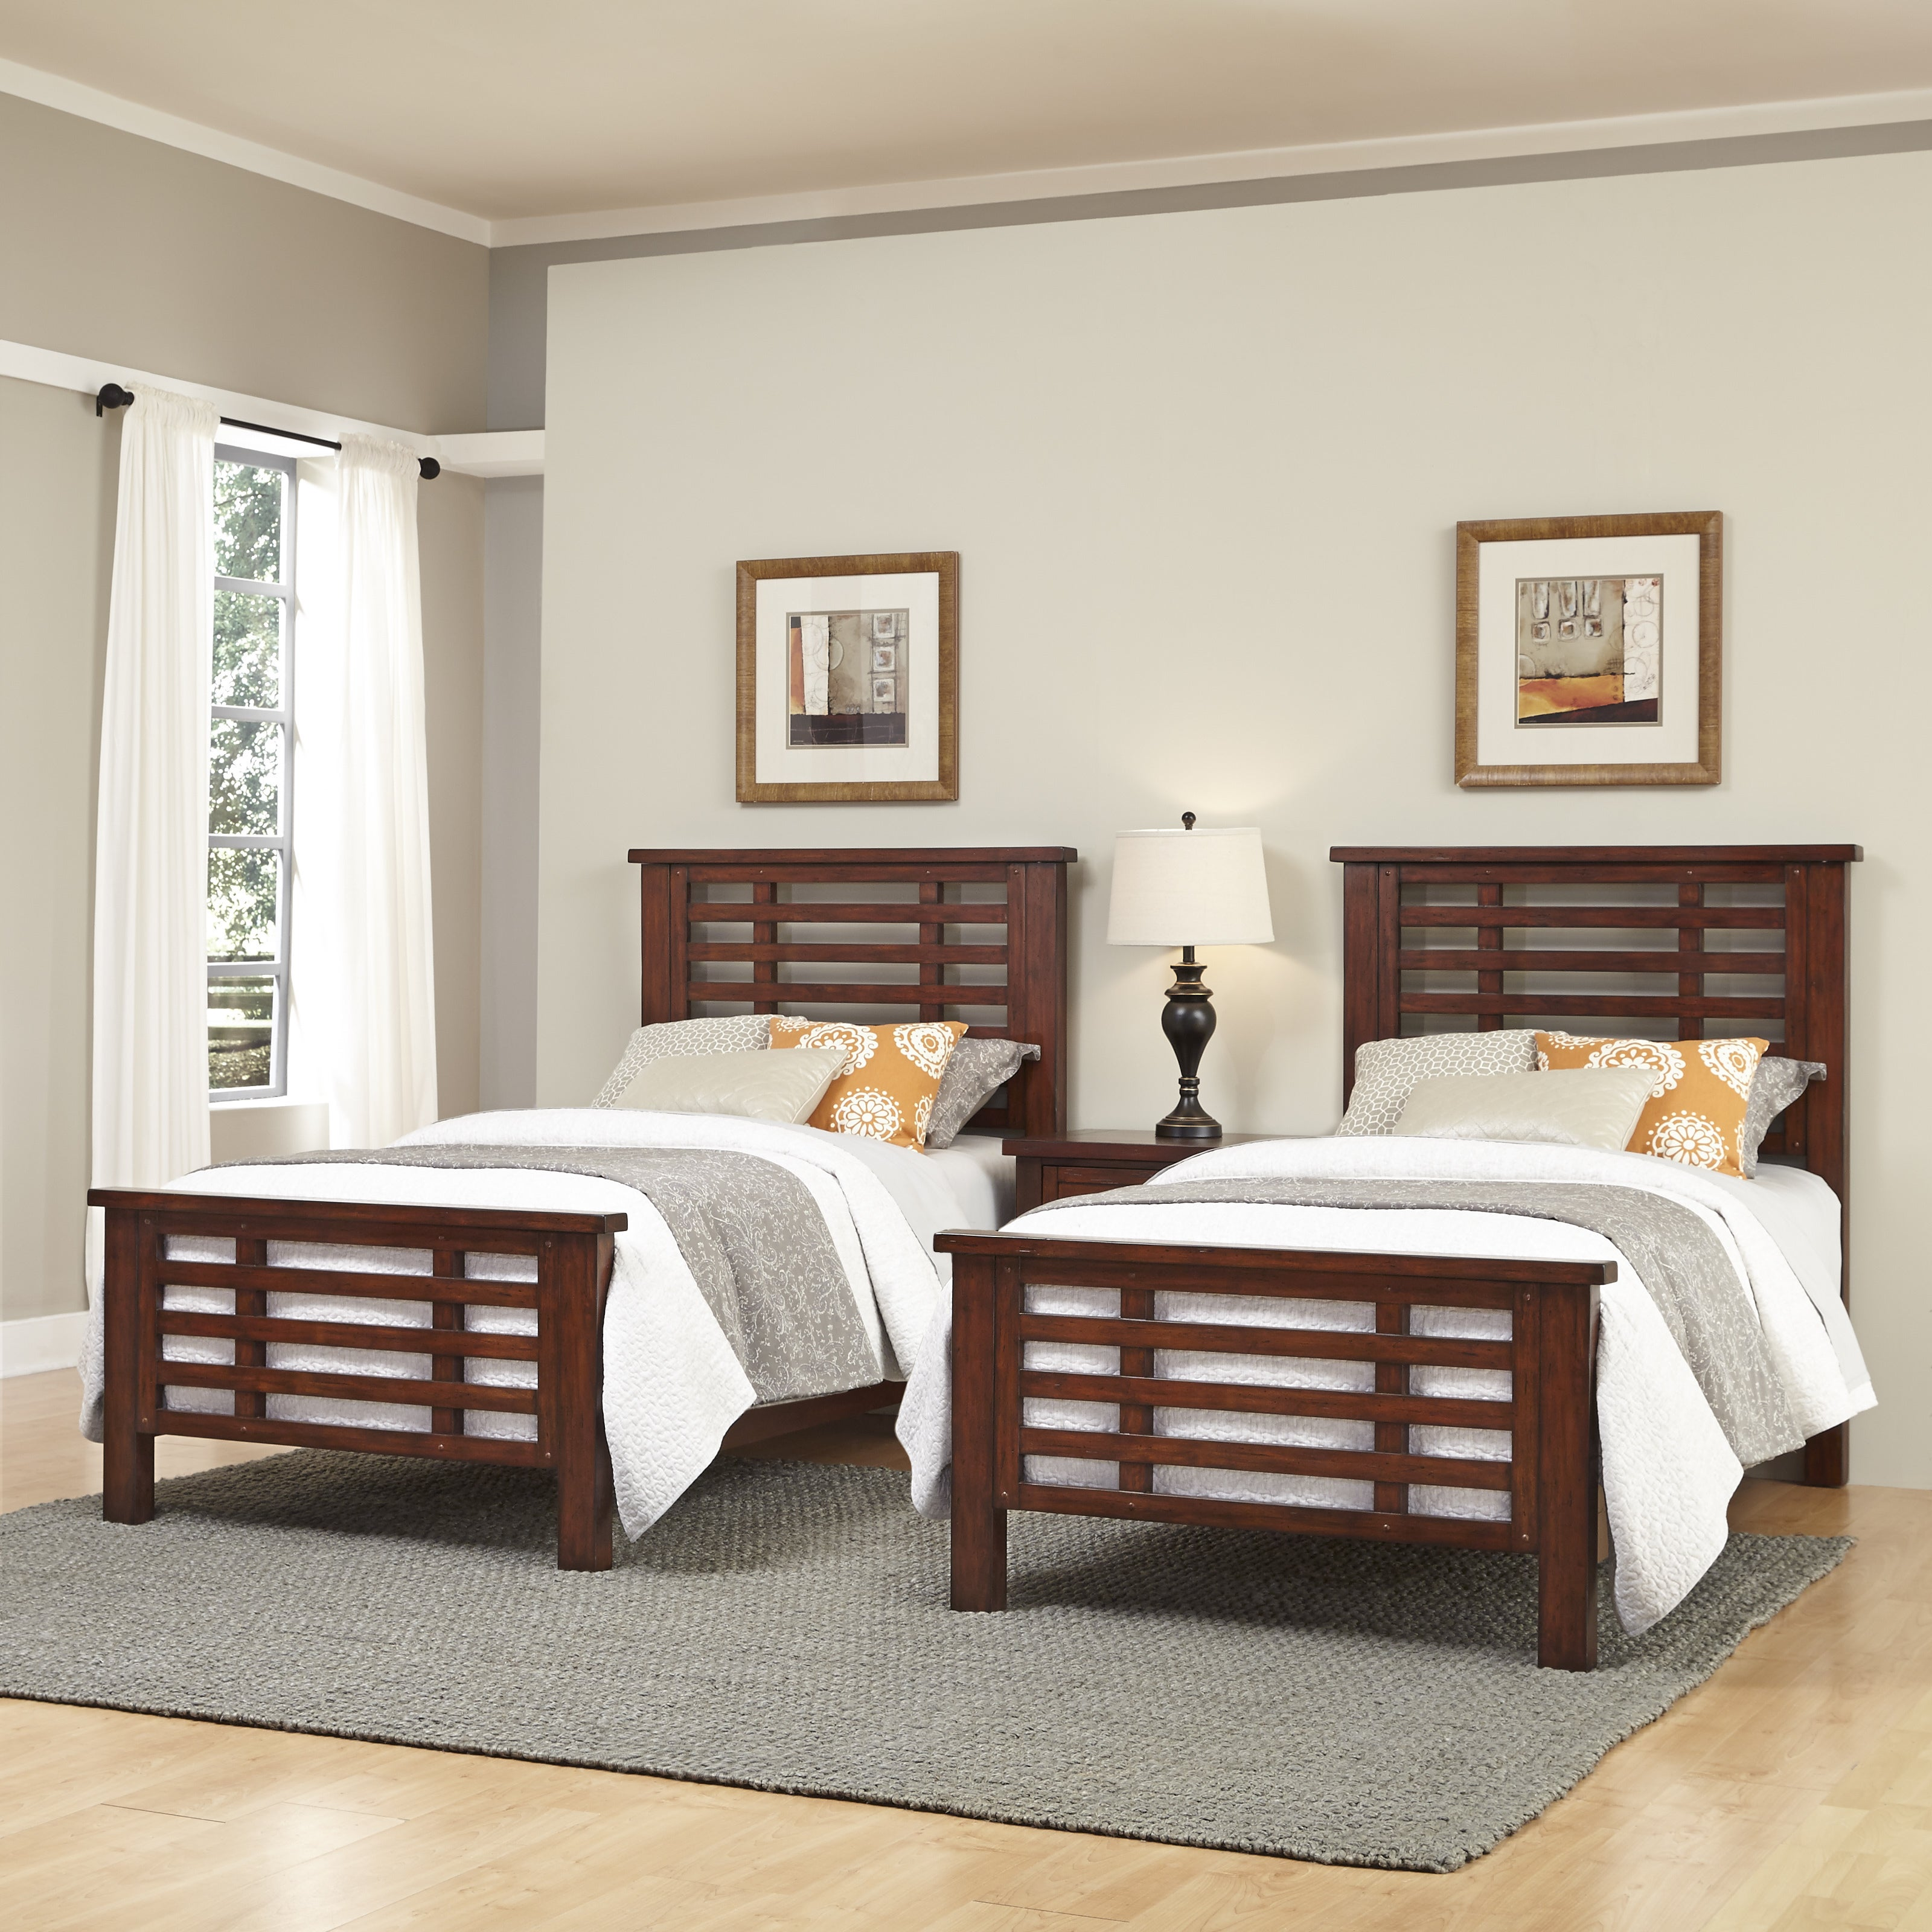 Cabin Creek Two Twin Beds And Night Stand By Home Styles Overstock 10539098